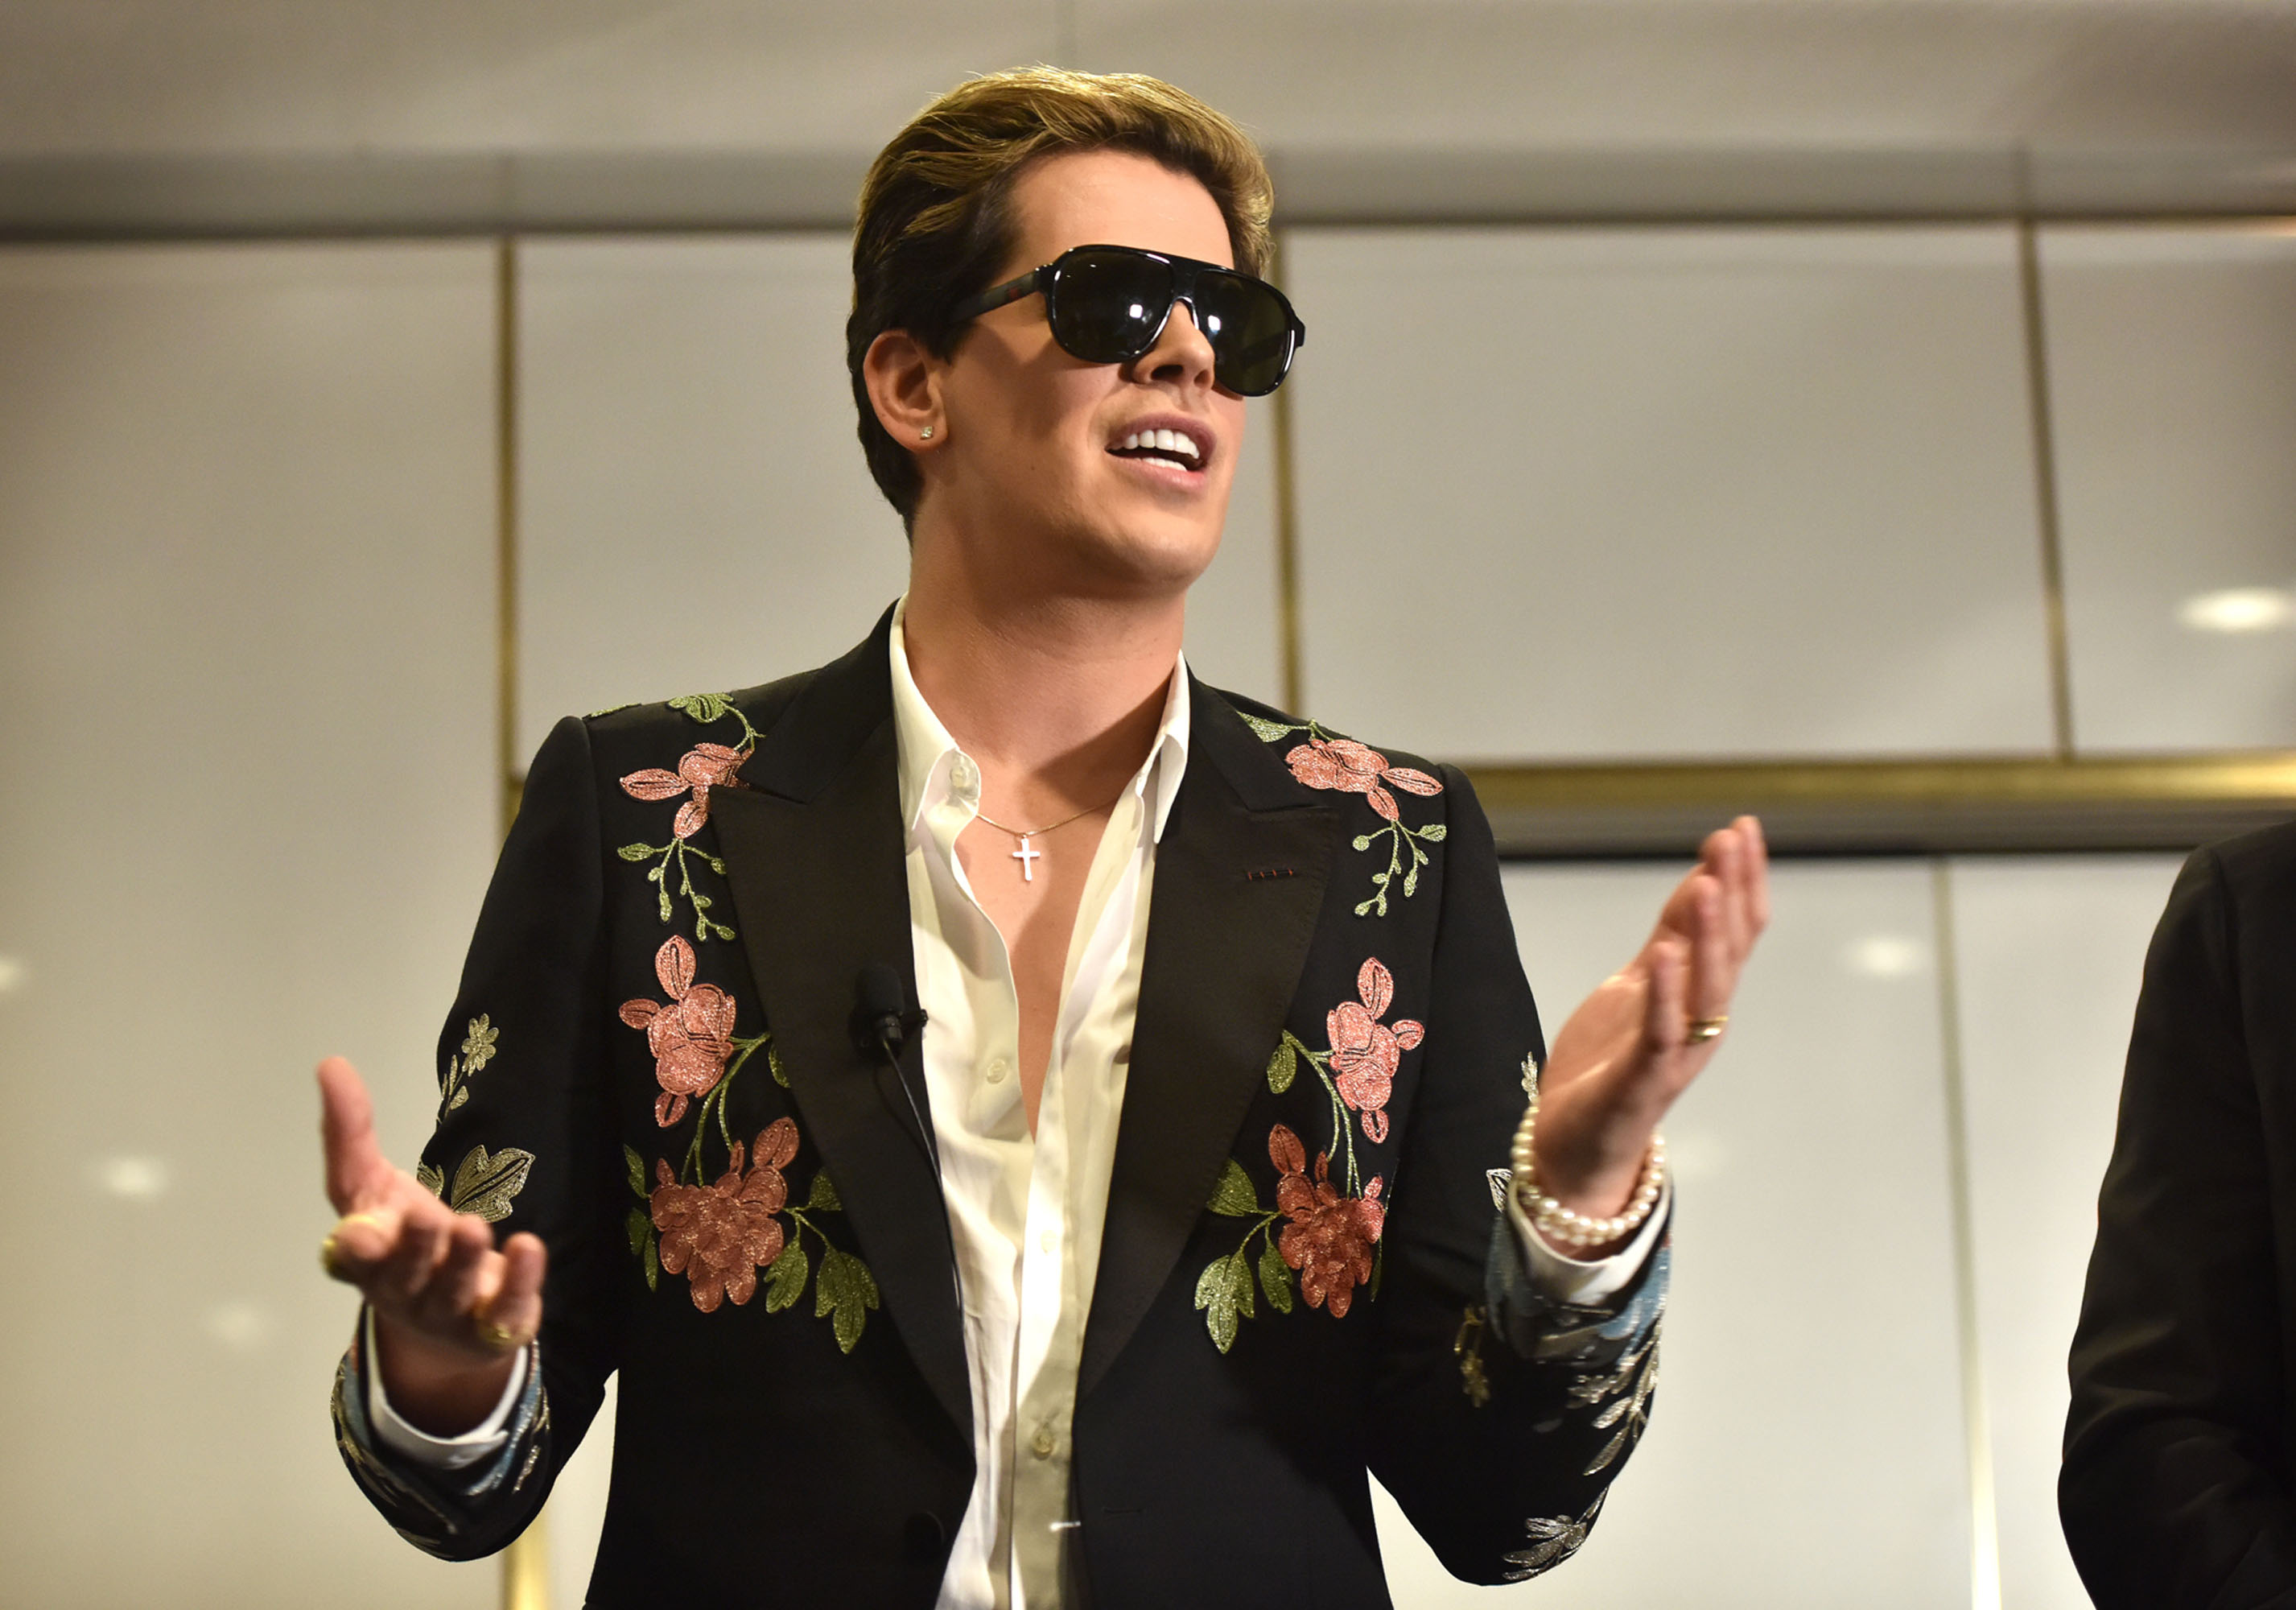 bloomberg.com - Shamim Adam - Australia Bans Milo Yiannopoulos From Touring After NZ Shooting